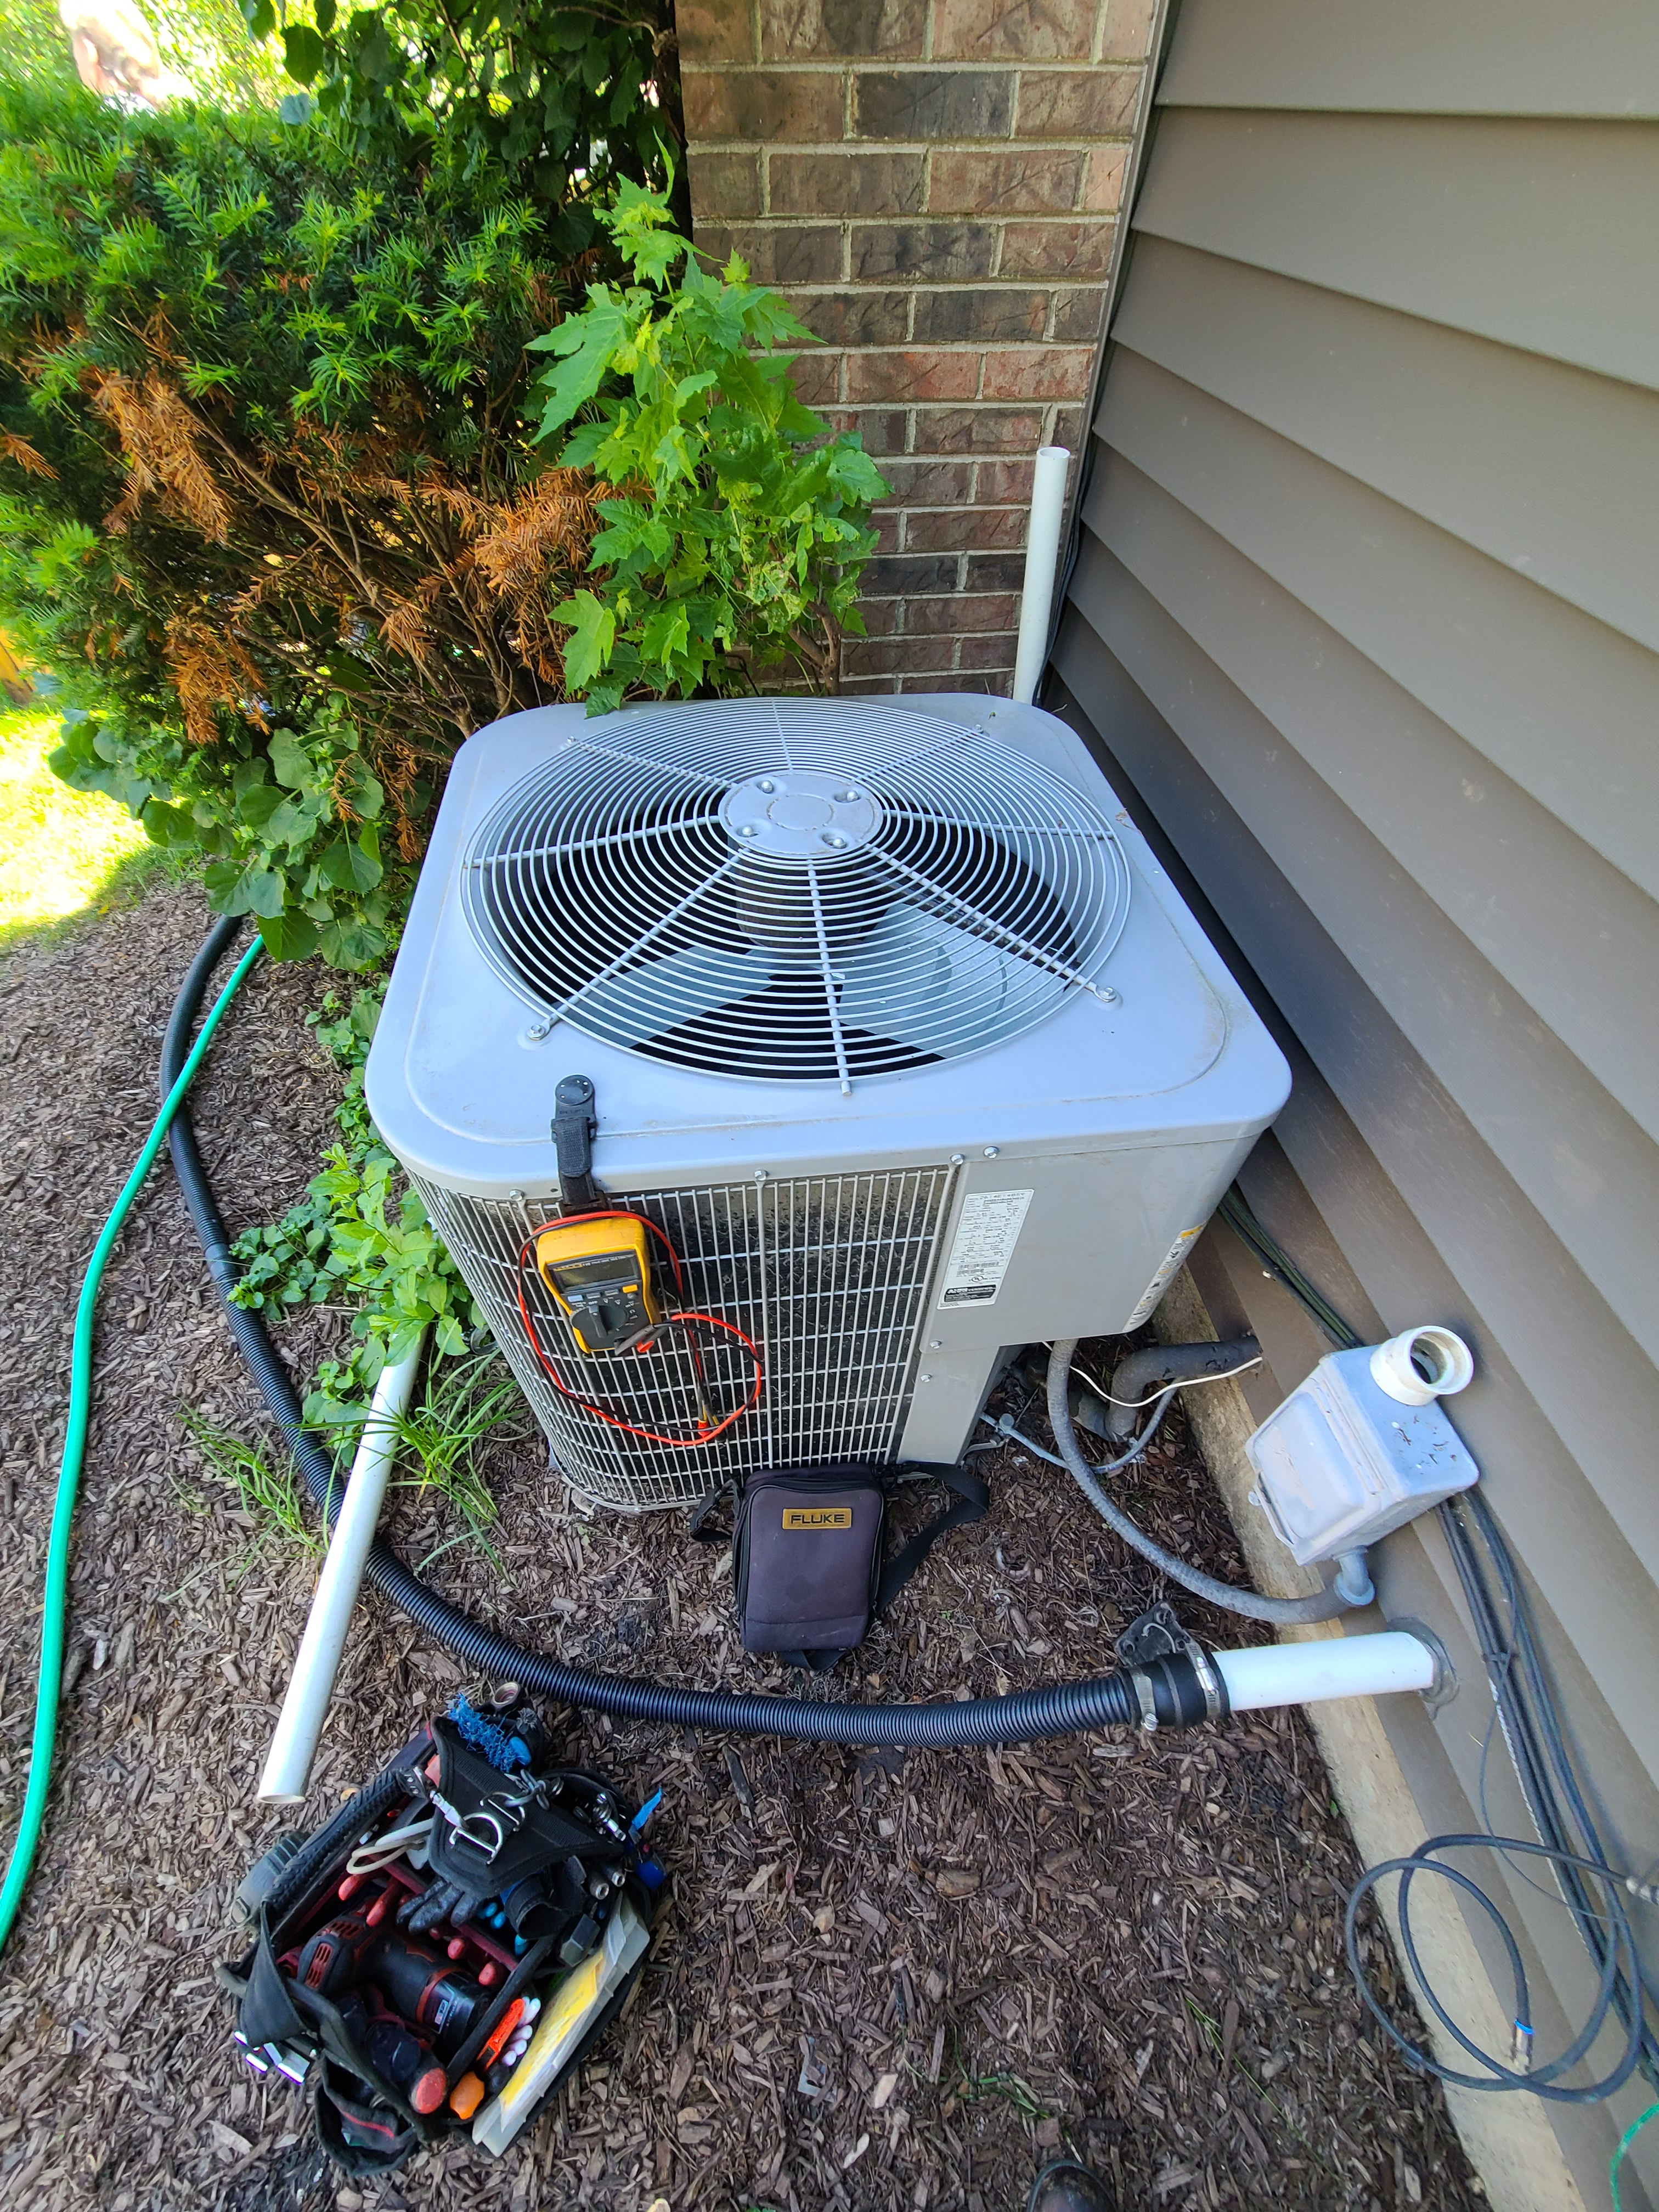 Carrier air conditioning system cleaned and checked. Ready for summer!